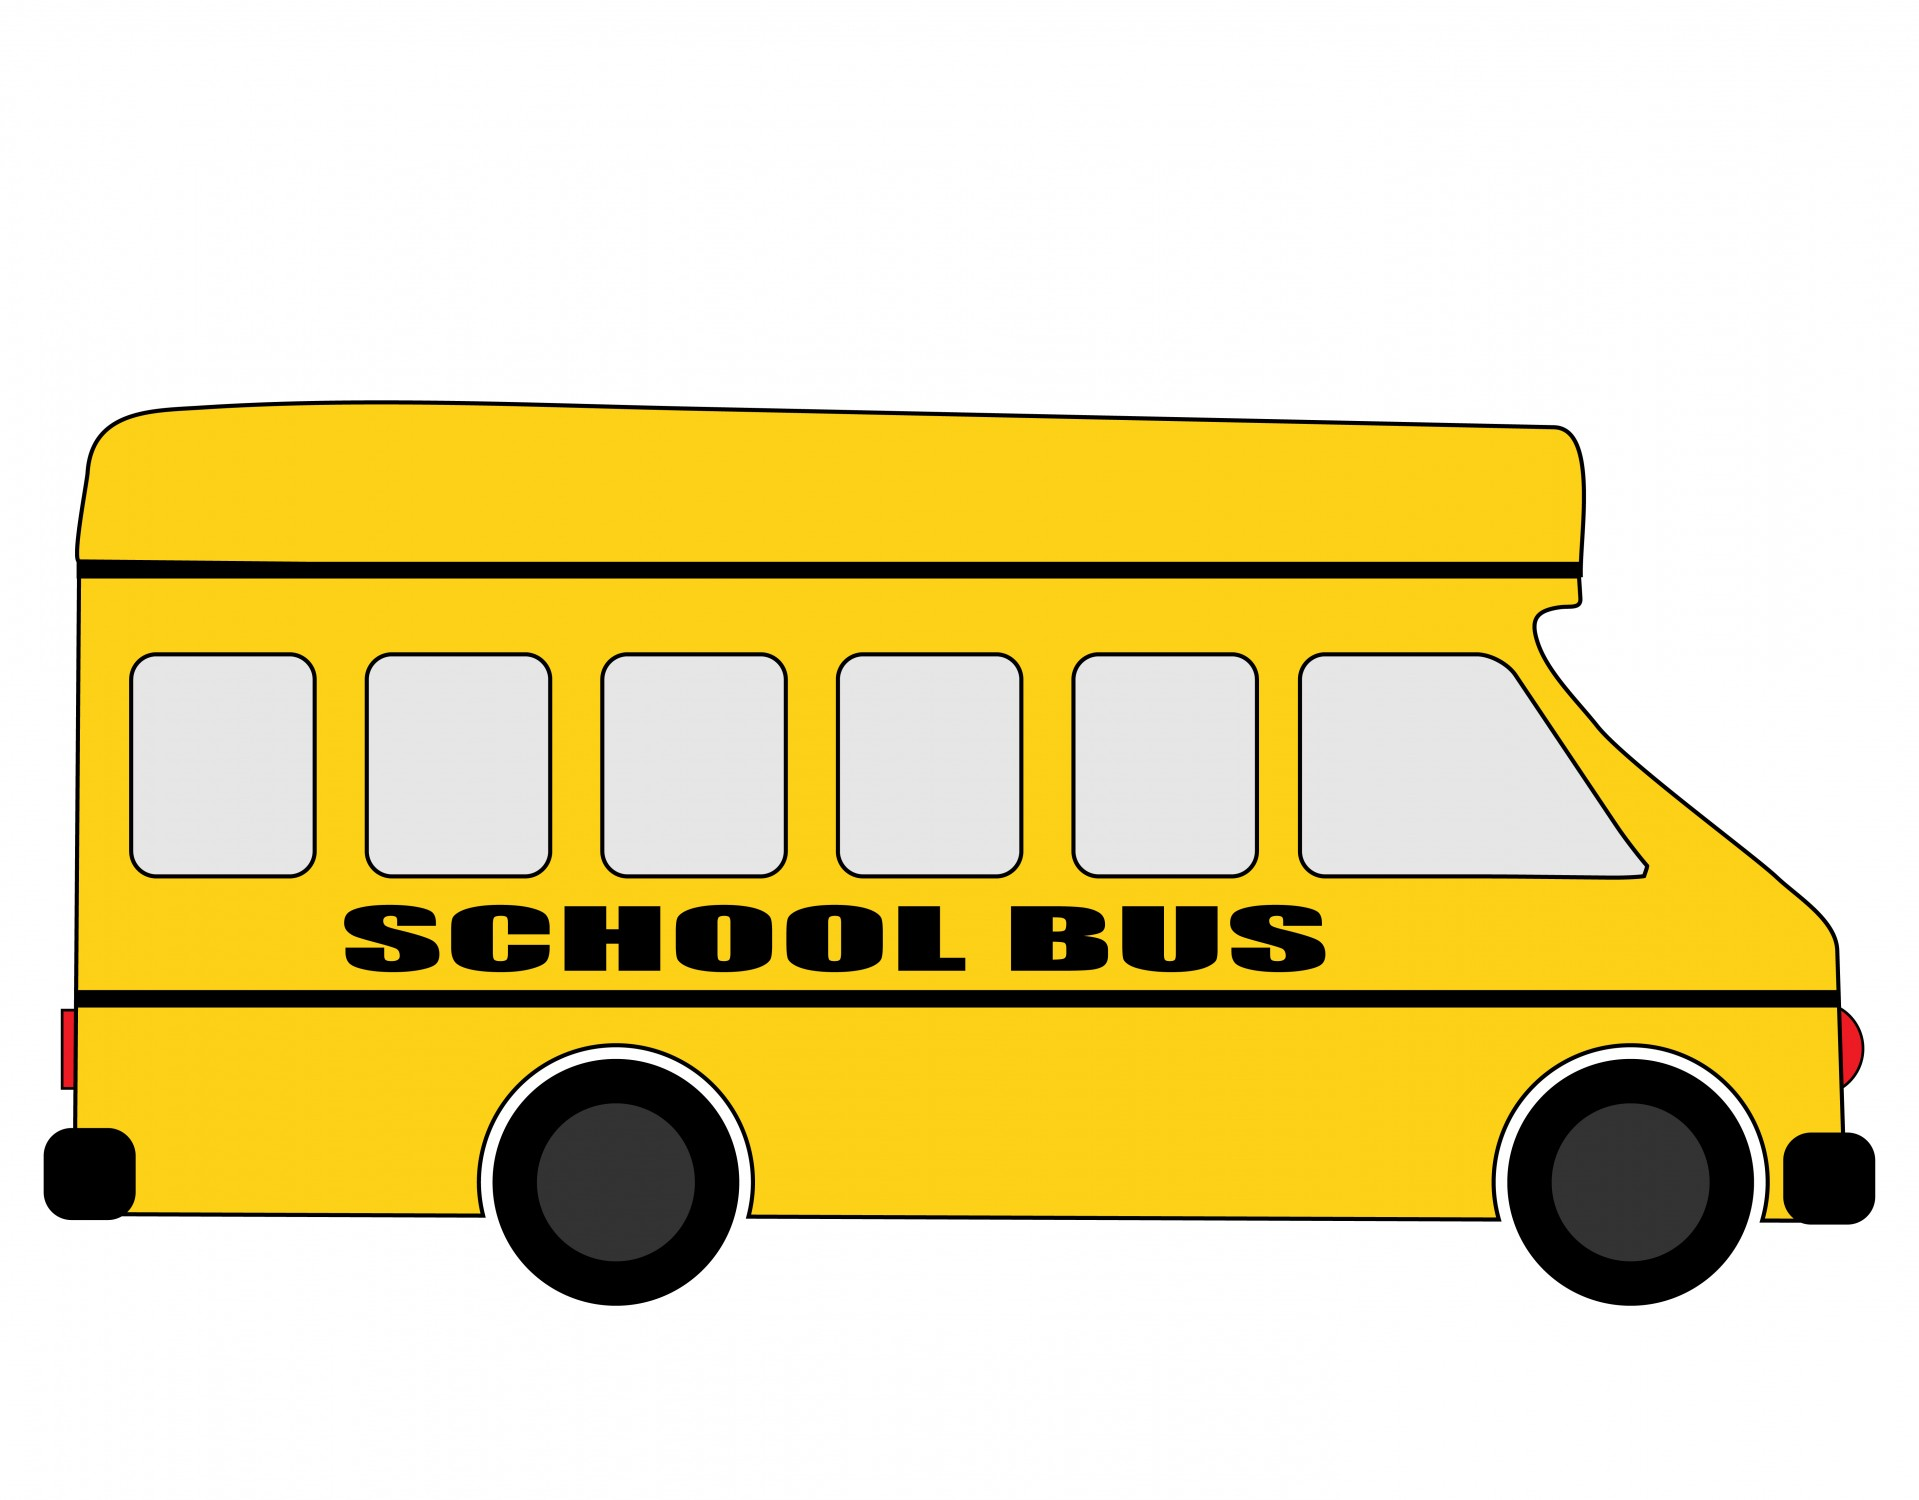 School bus,bus,transport,yellow,clipart.